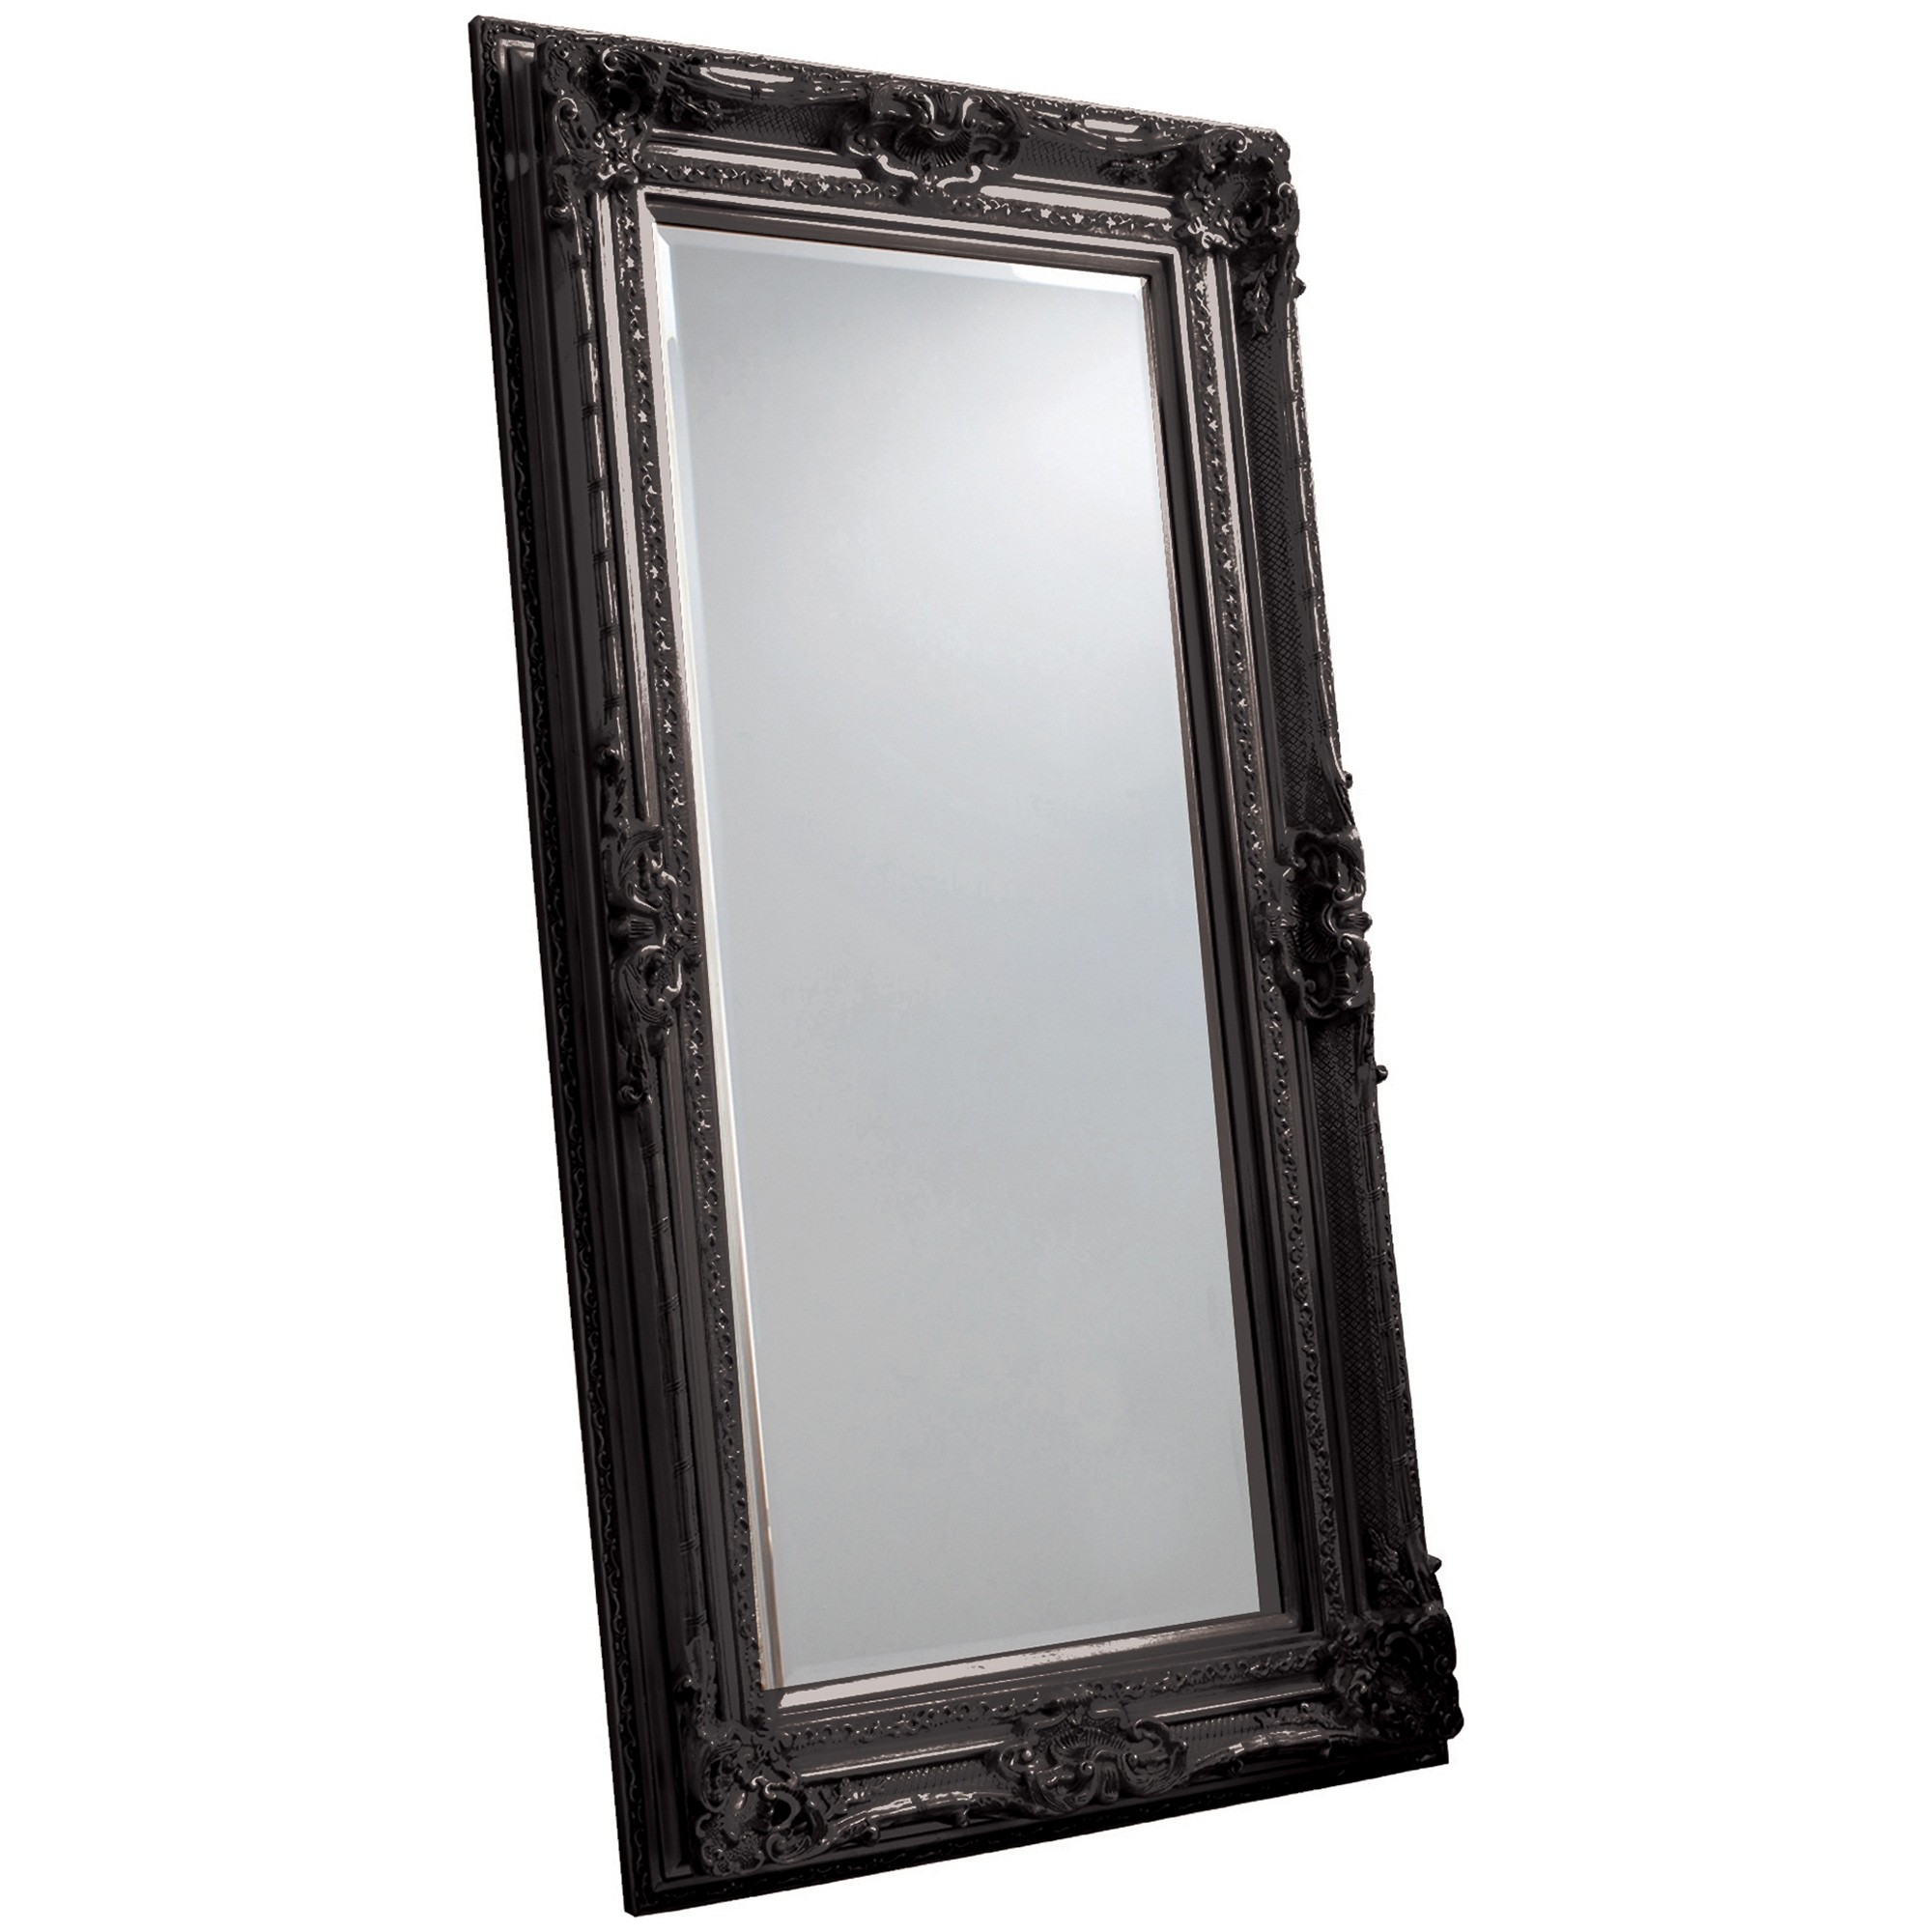 Violet Baroque Floor Mirror, 185cm, Black